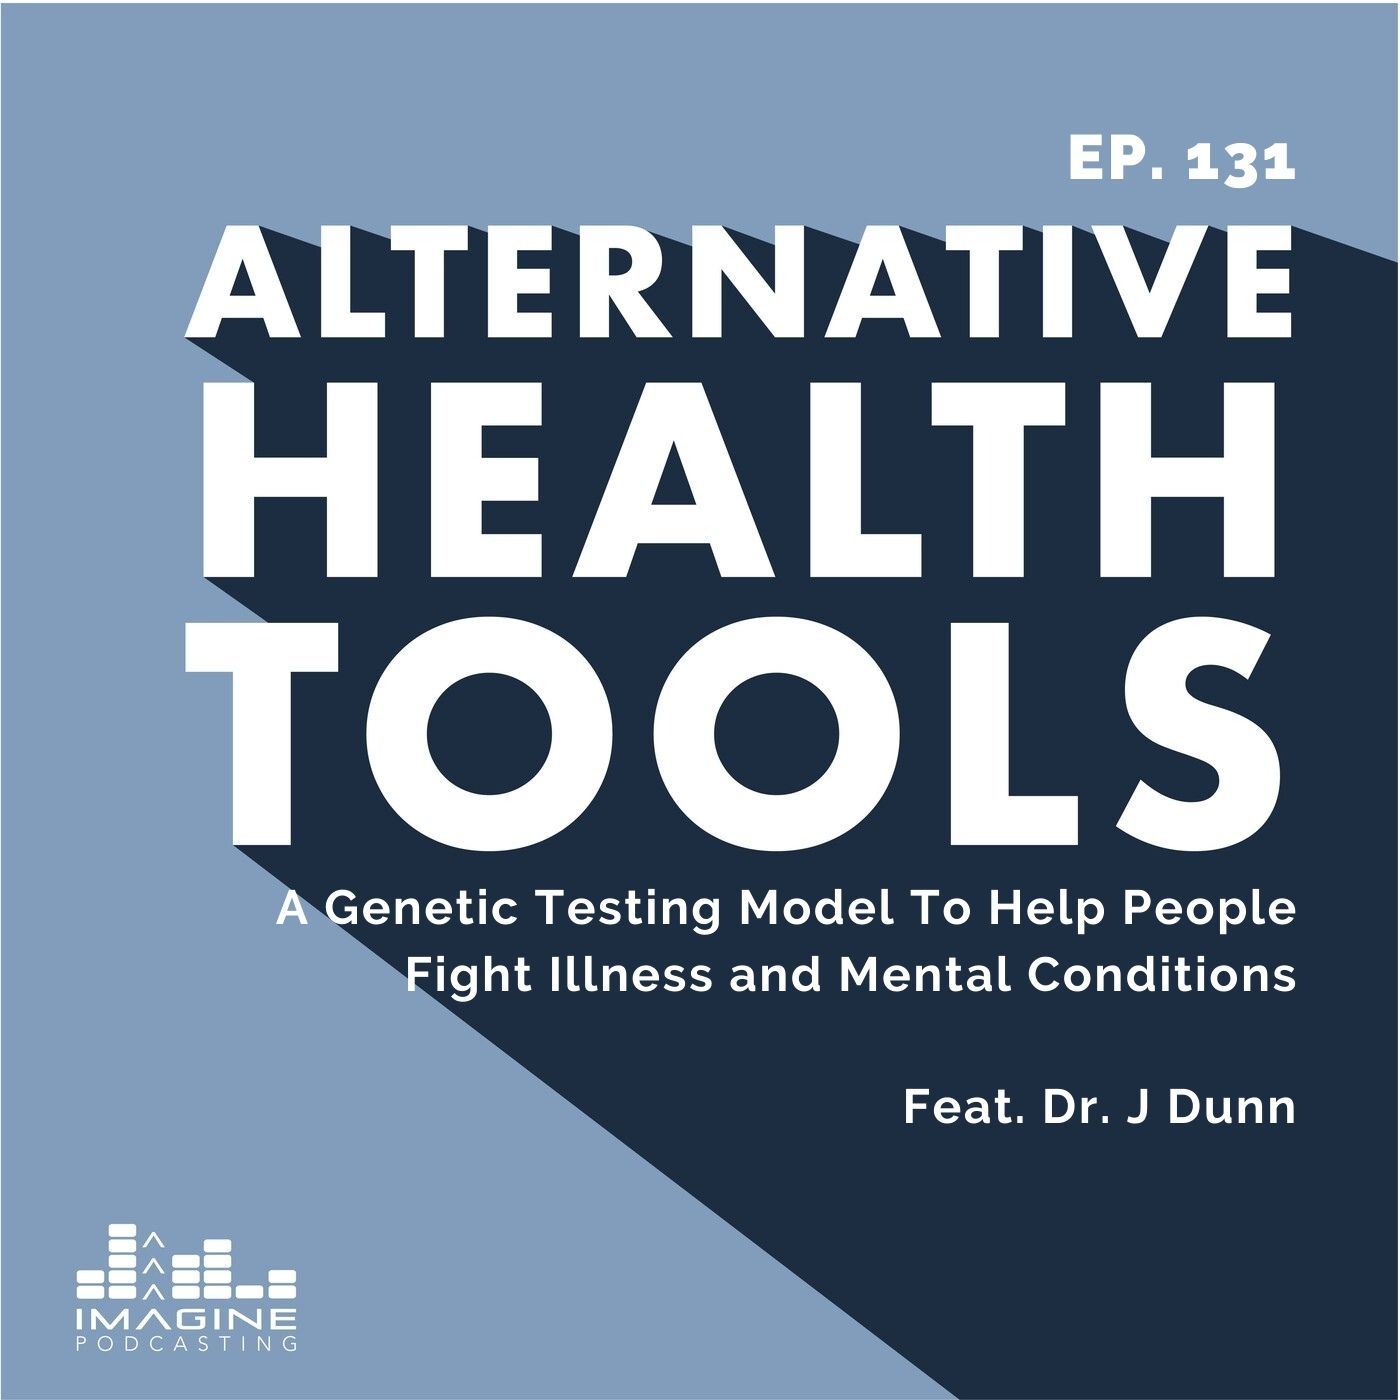 131 A Genetic Testing Model To Help People Fight Illness and Mental Conditions with Dr. J. Dunn